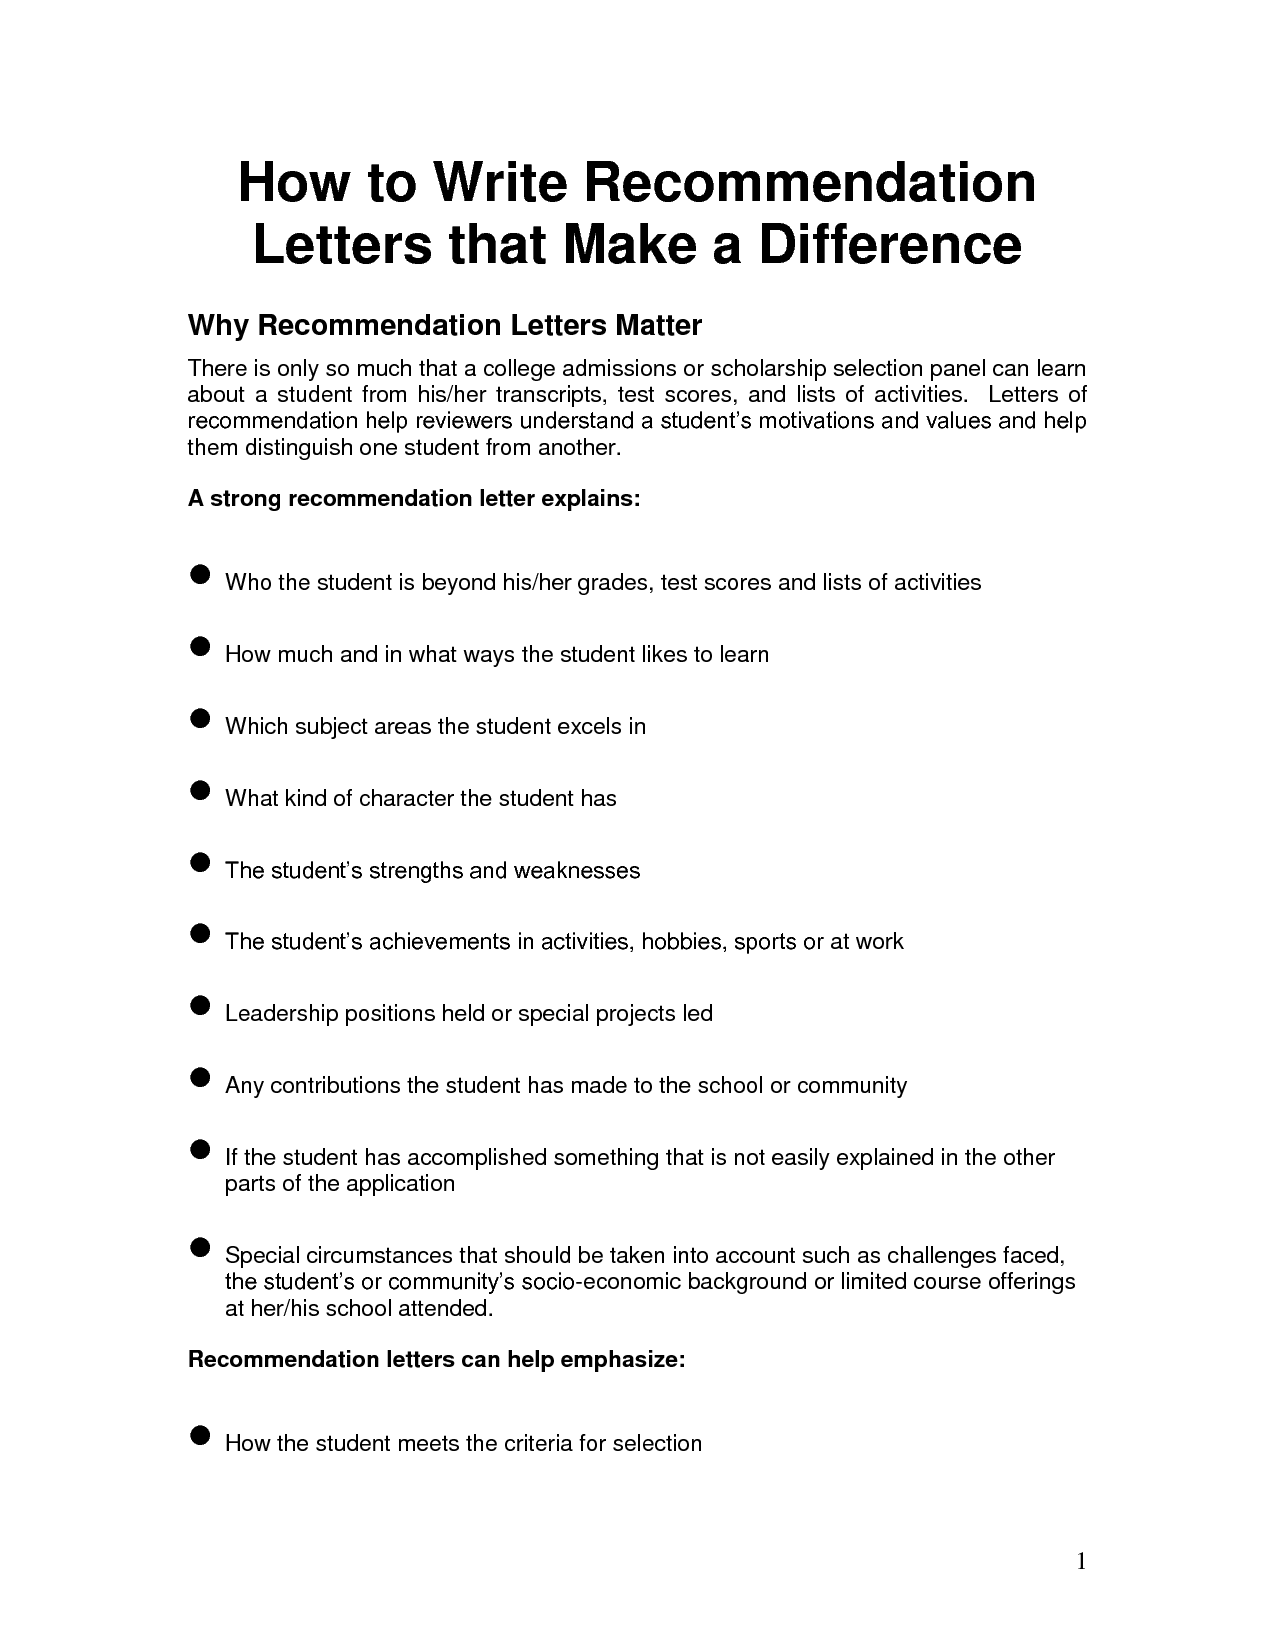 10 Tips for Writing Letters of Recommendation